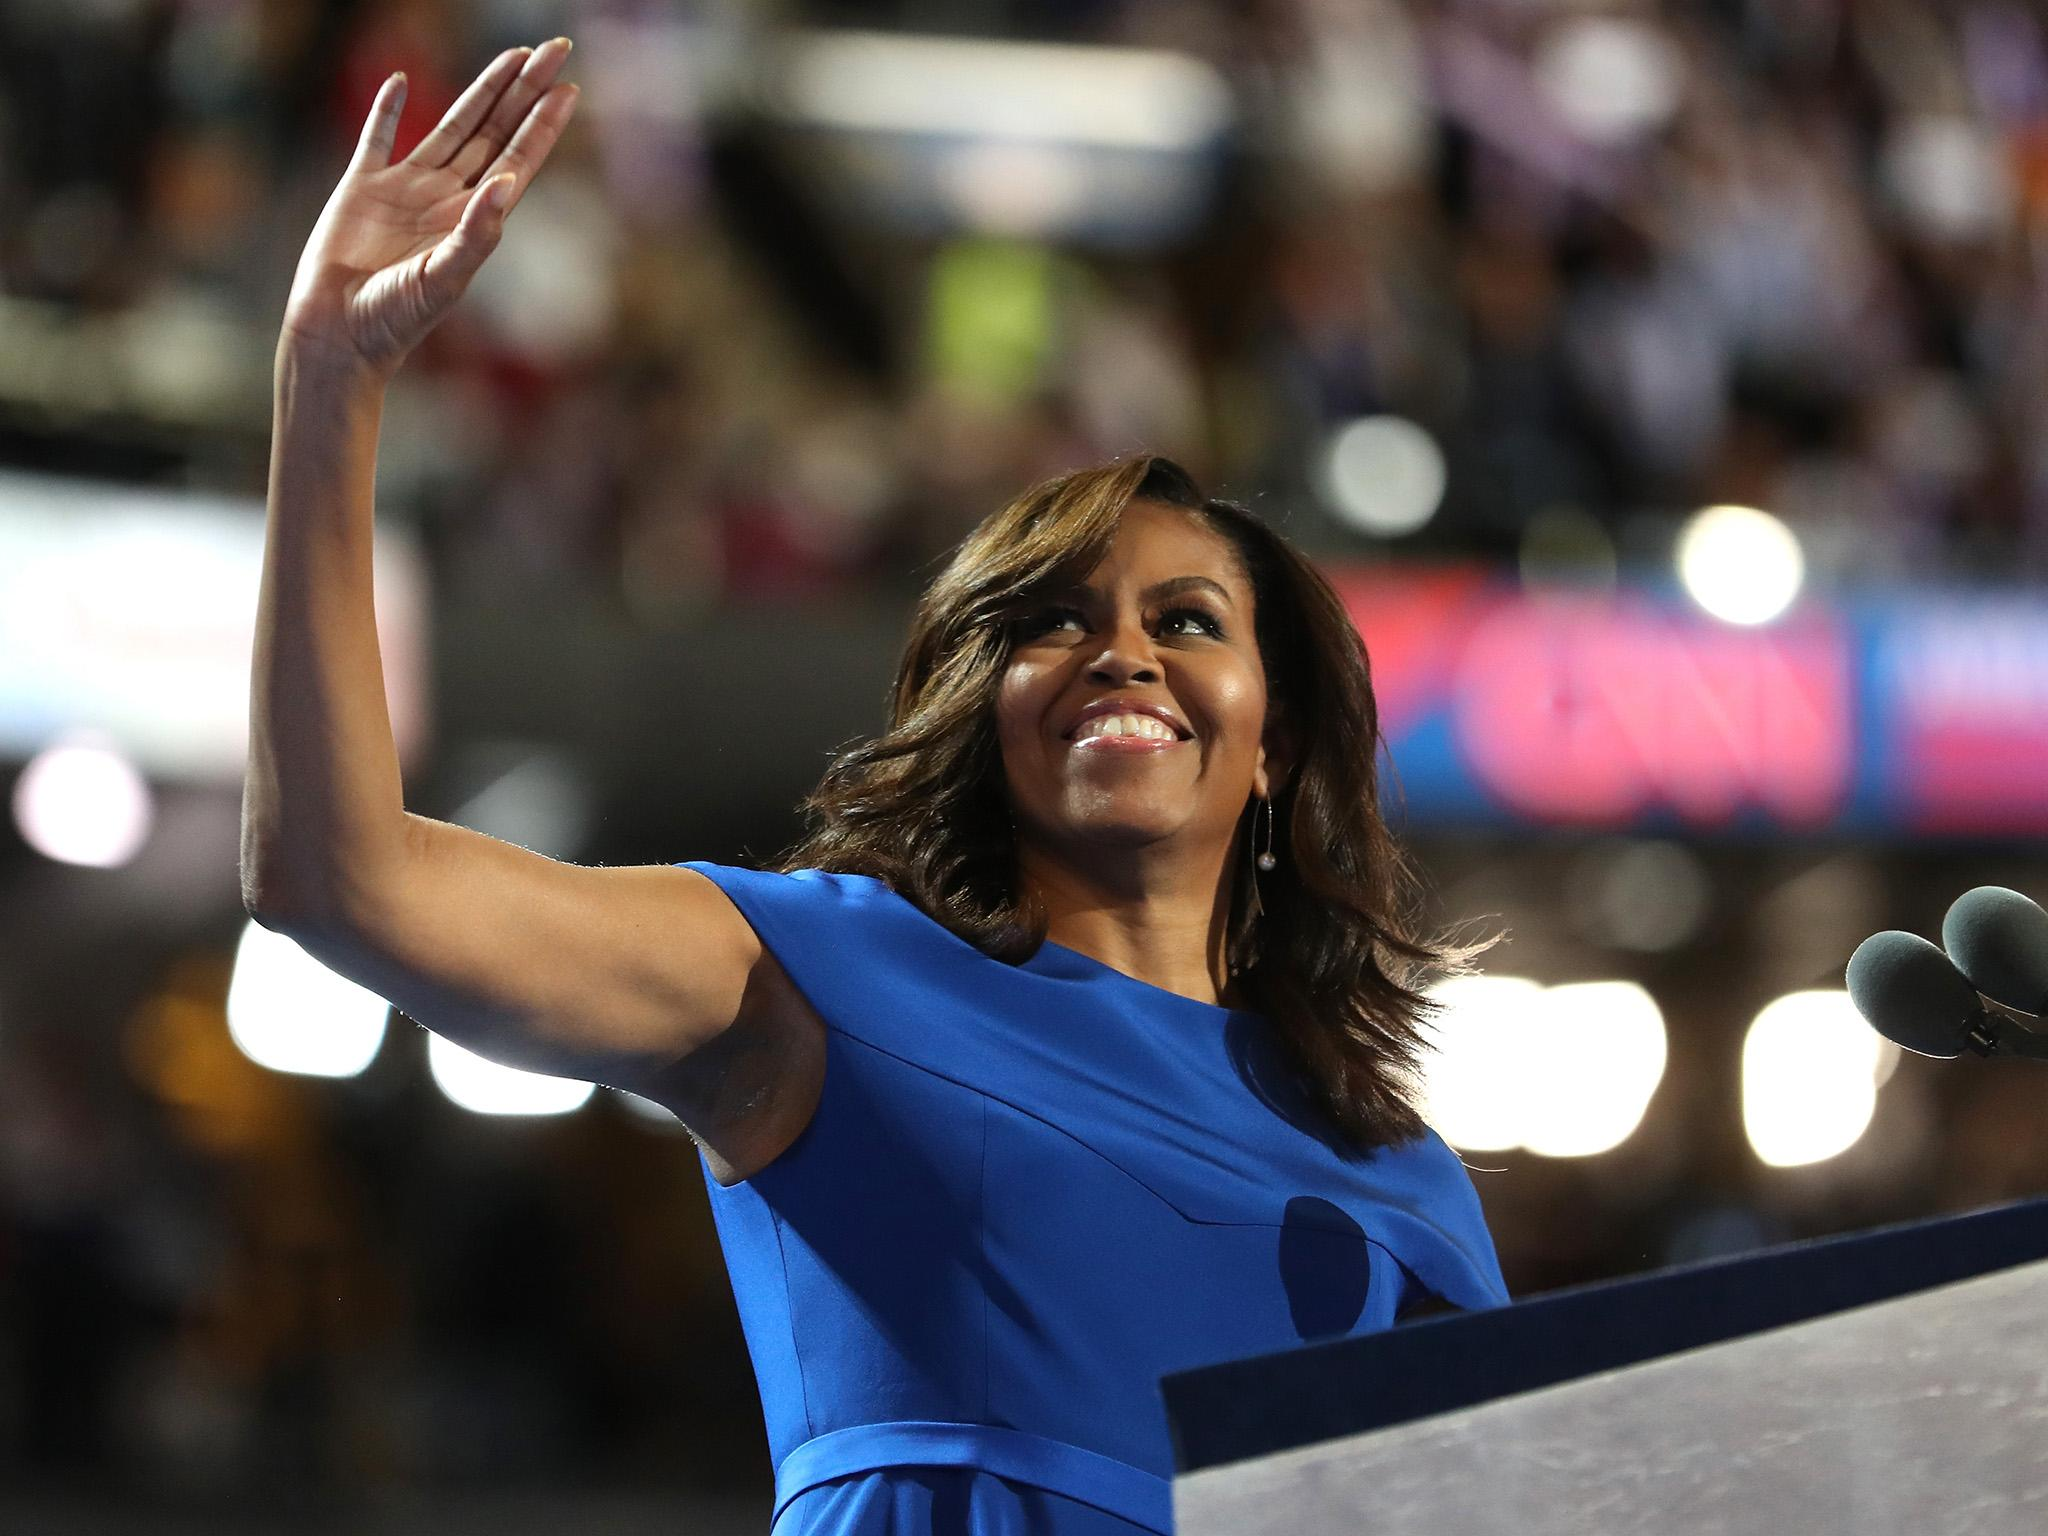 essay for michelle obama Popsugar culture michelle obama author veronica chambers's essay on michelle obama how michelle obama captures the very best of women.